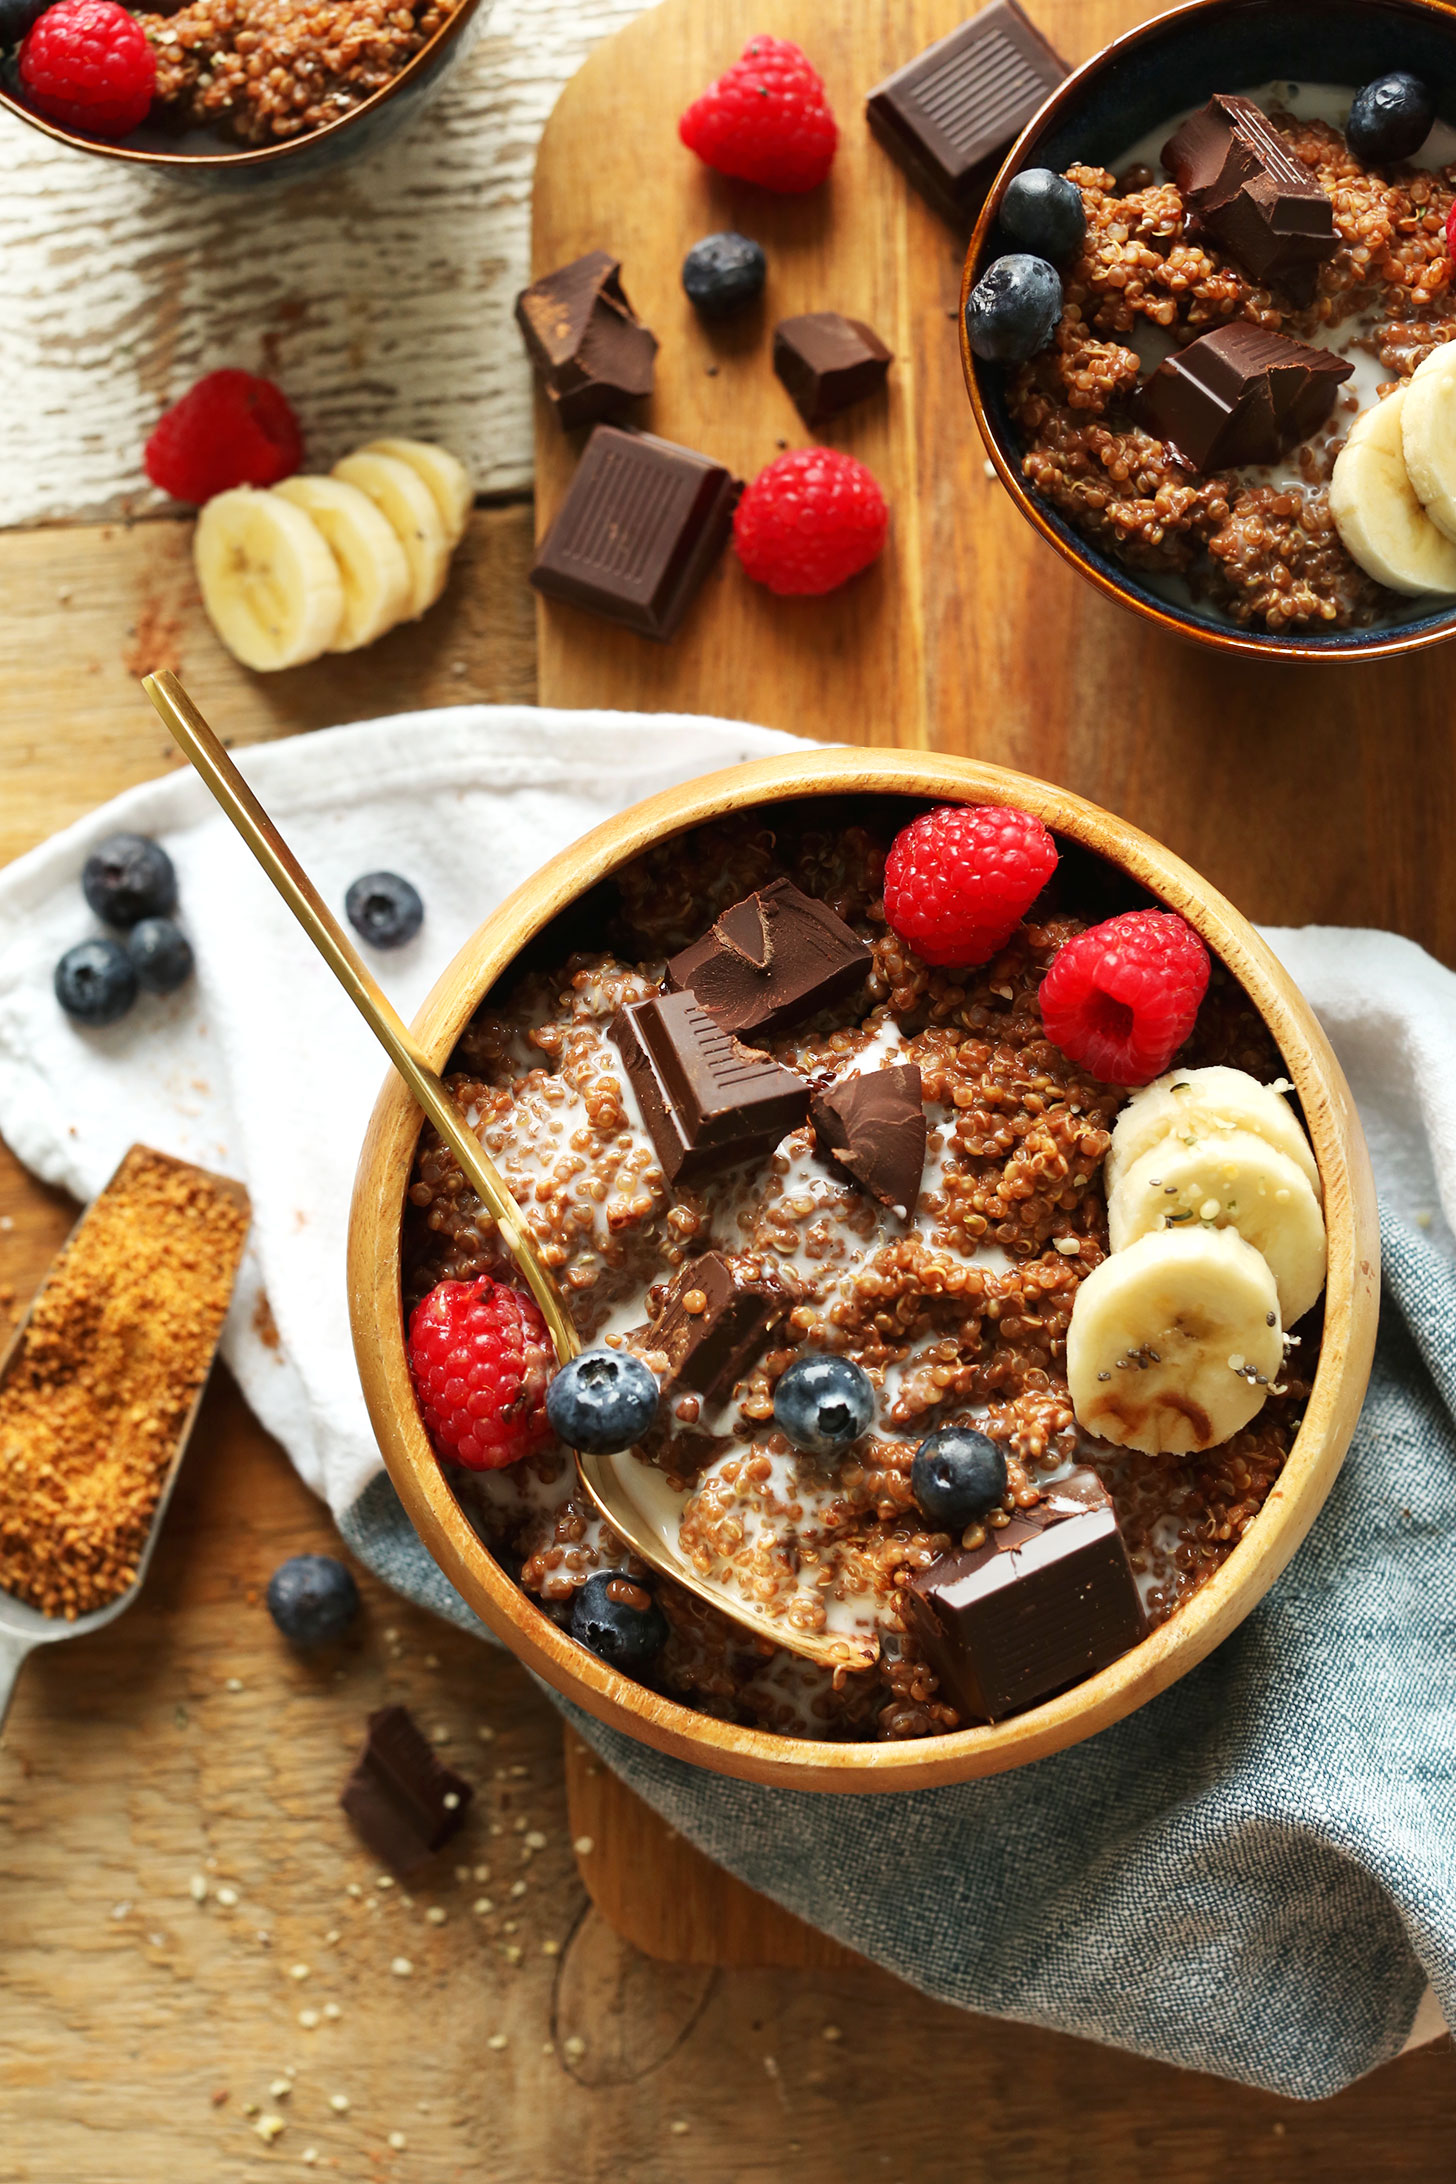 DARK-CHOCOLATE-Quinoa-Breakfast-Bowl-